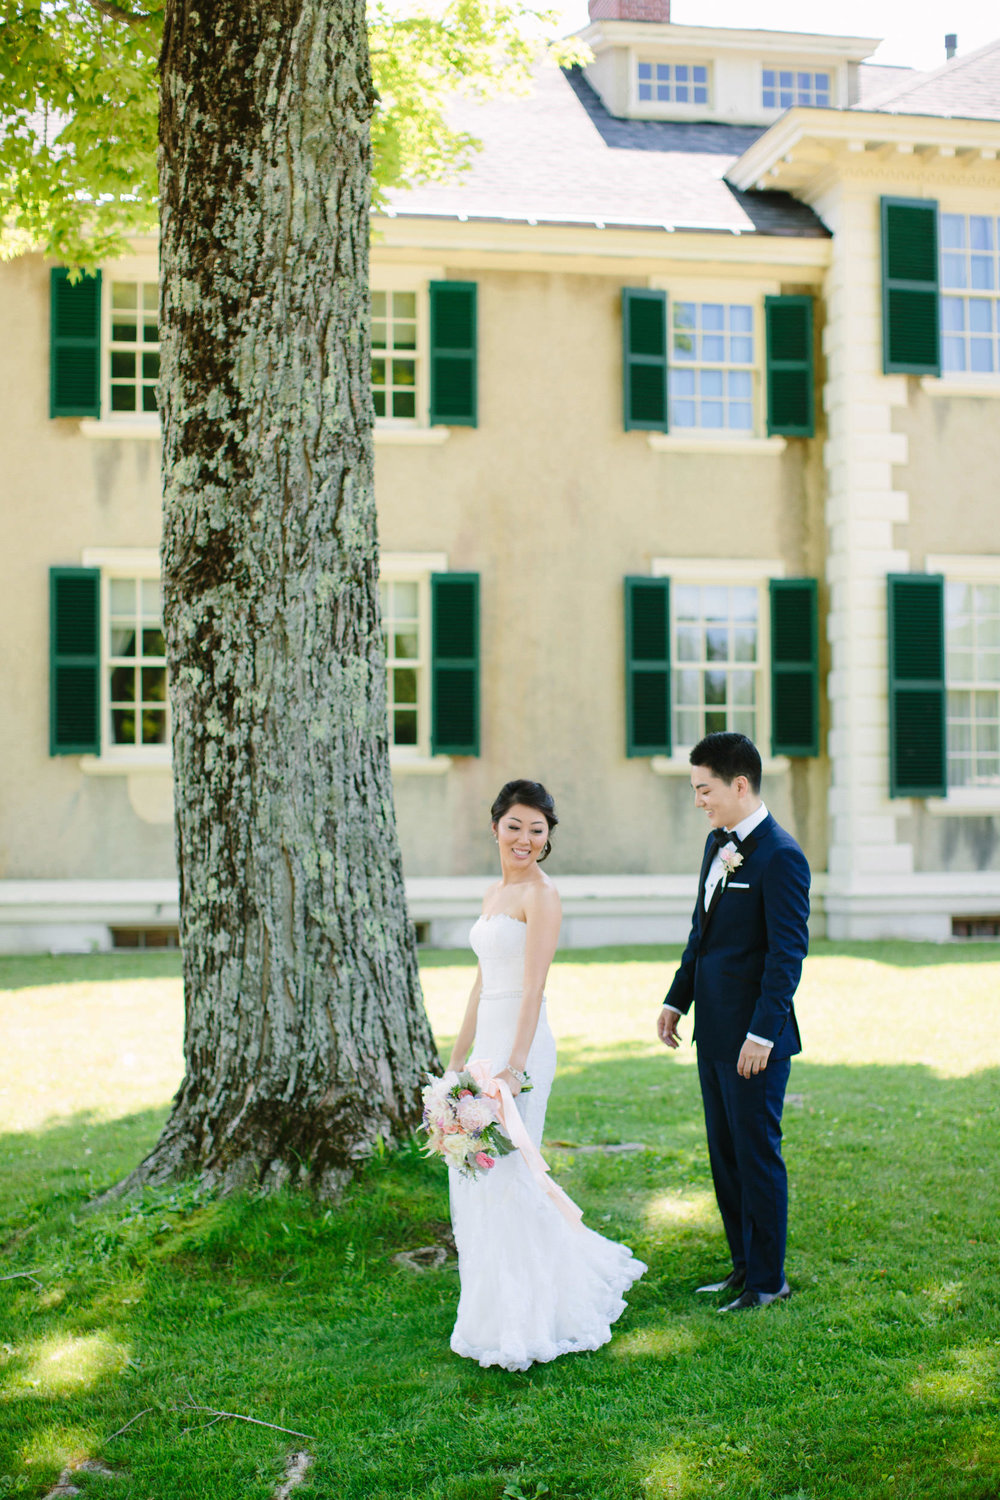 hildene_wedding_25.jpg